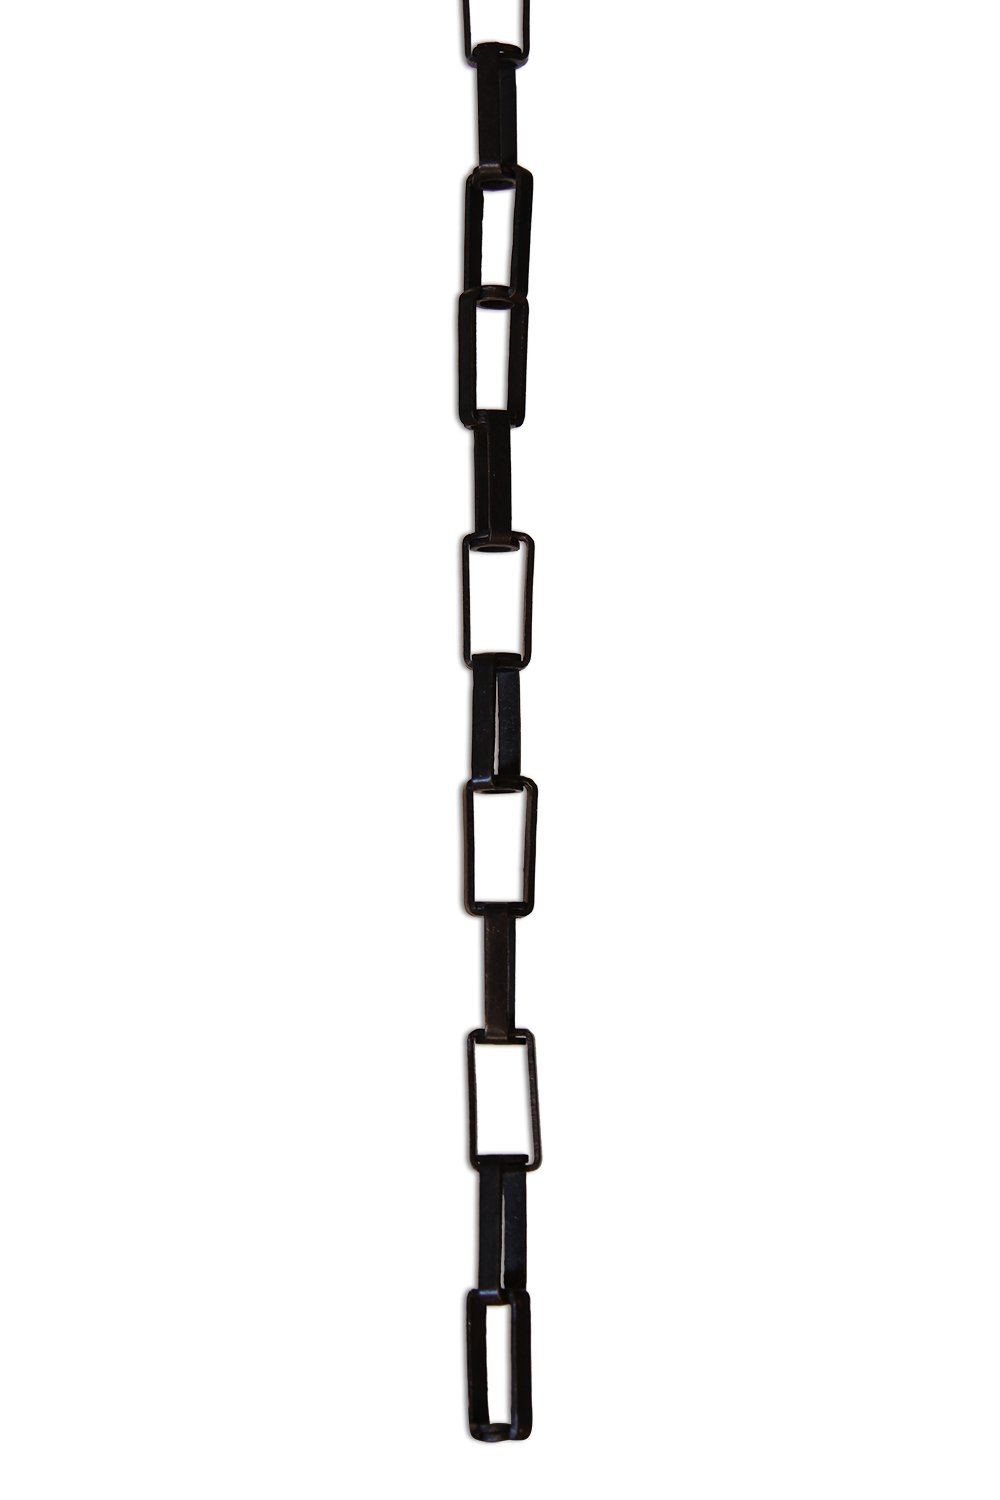 Lighting RCH Supply Company RCH Hardware CH-09-AD Acid Dipped Solid Brass Chain for Hanging Rectangular Cage with Centre Hole and Welded Links 1 Foot